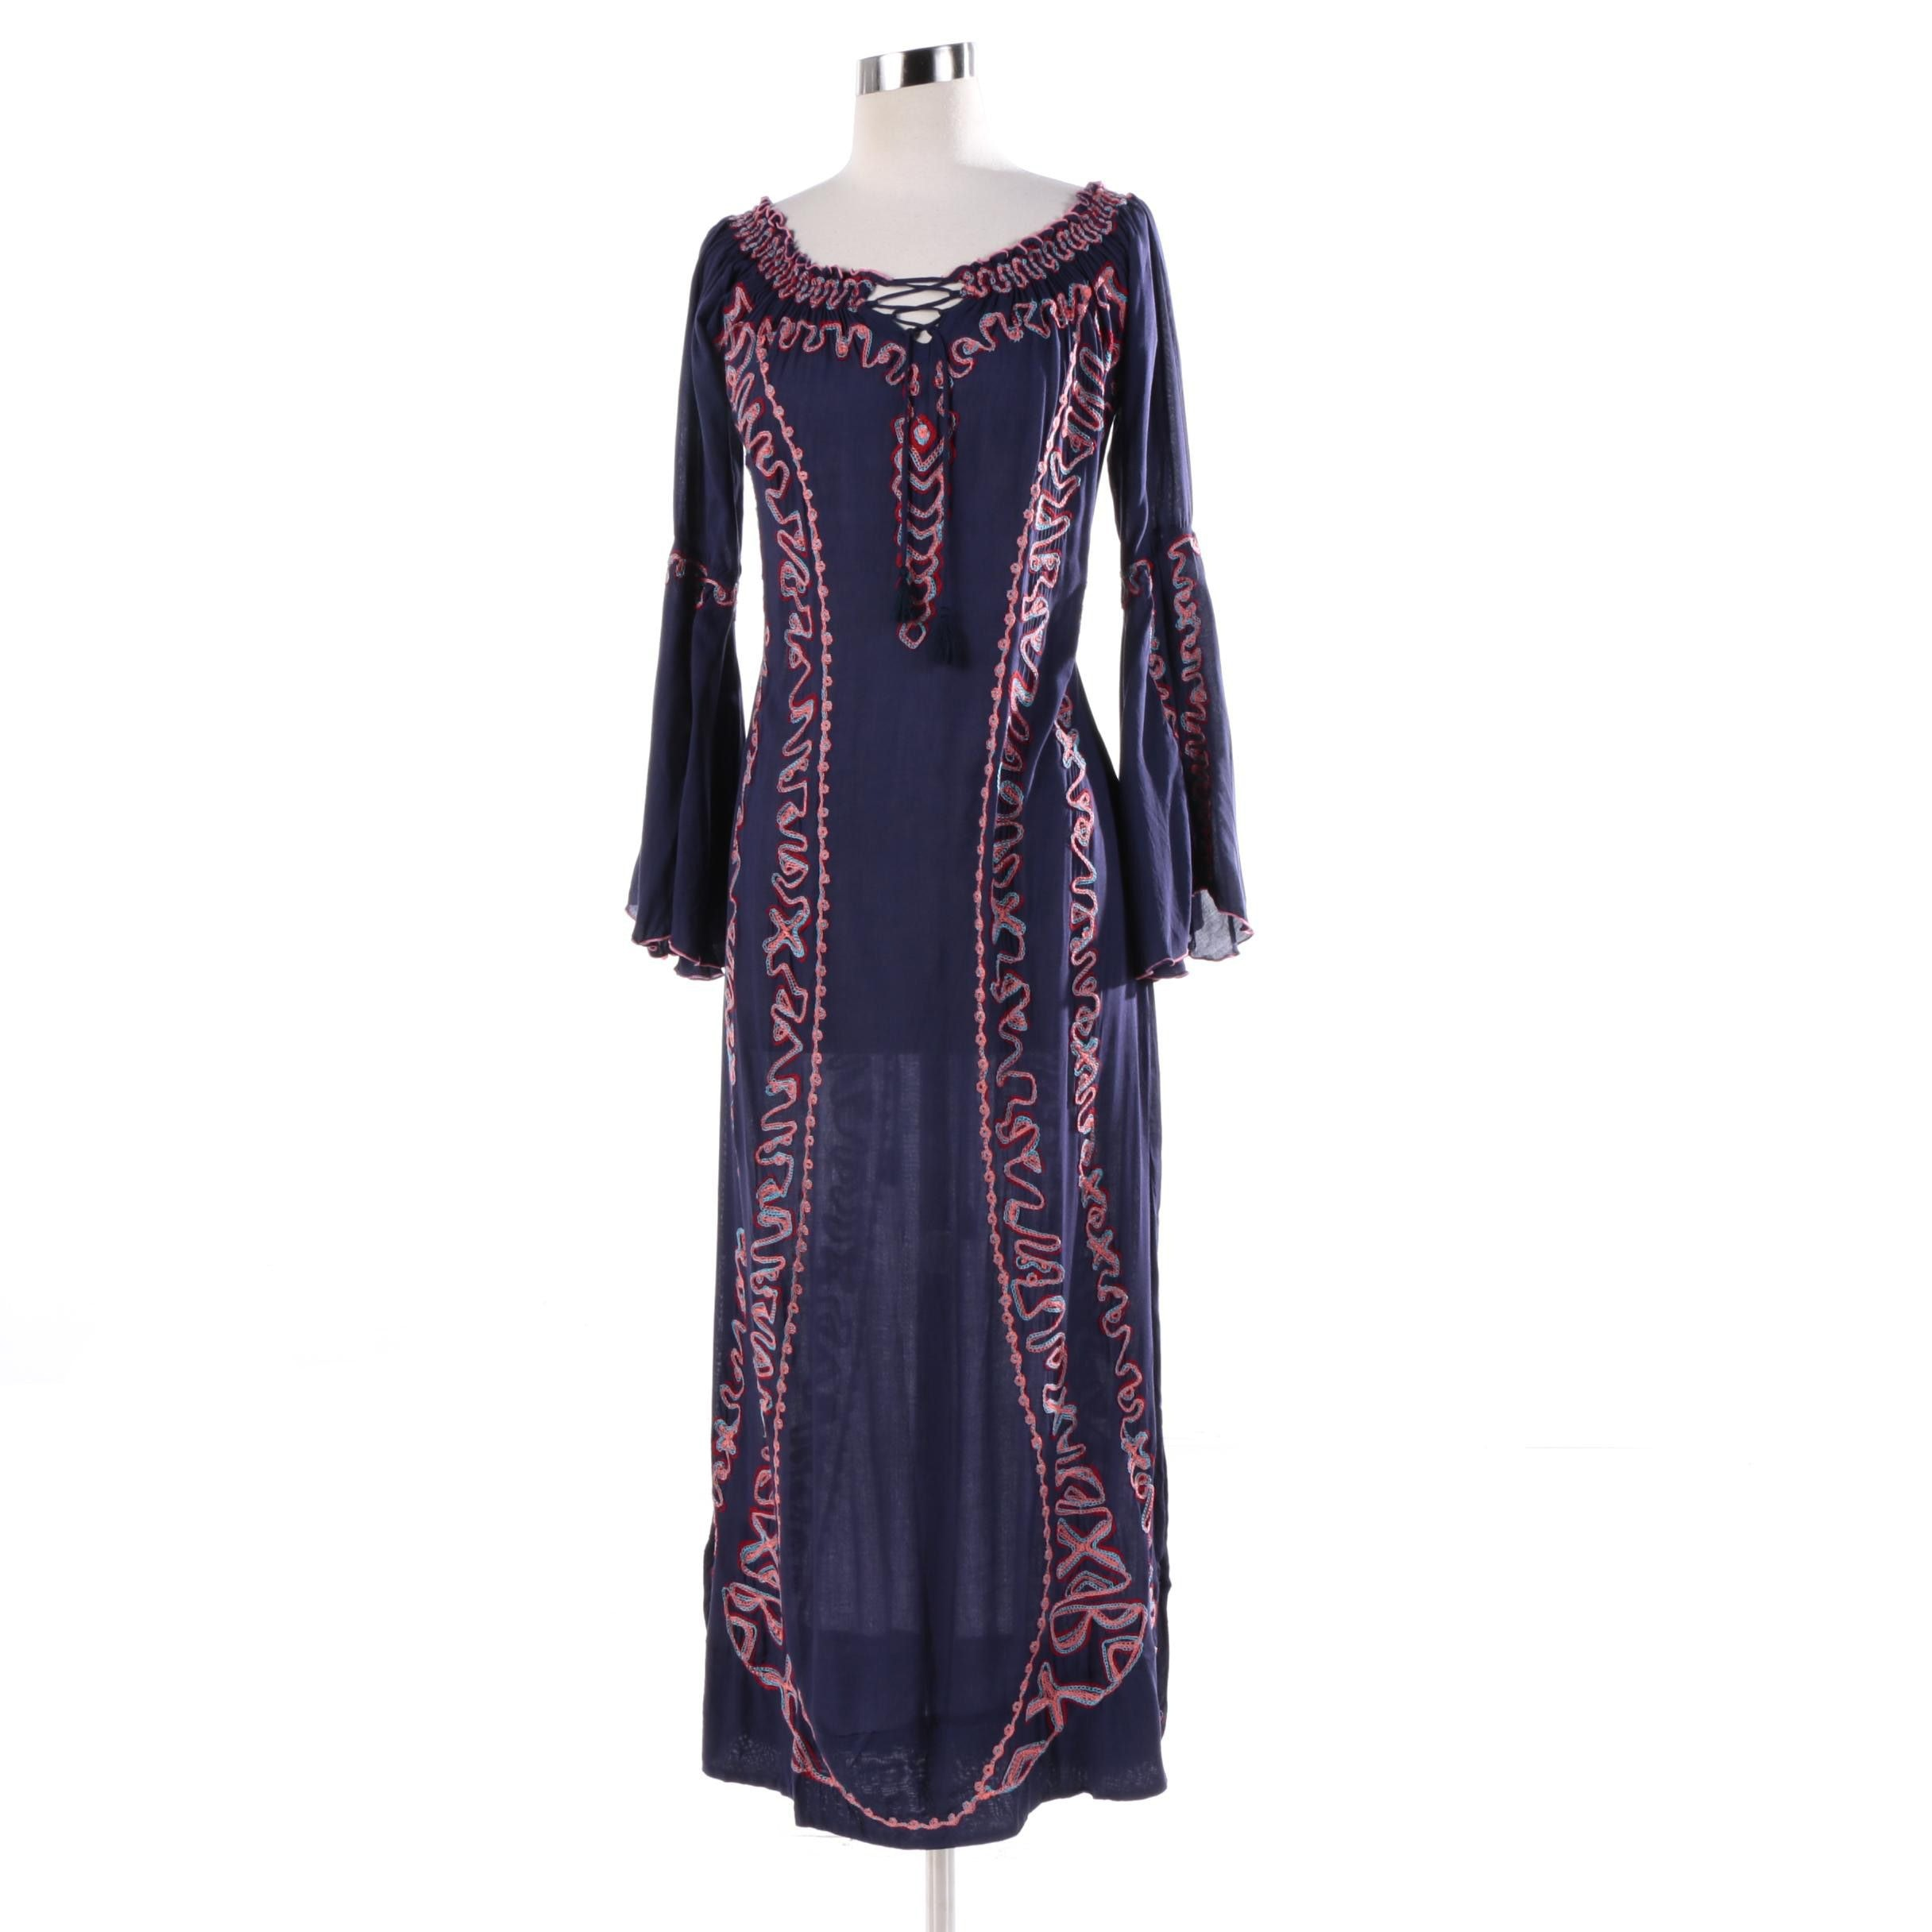 Poupette Embroidered Navy Maxi Dress with Bell Sleeves